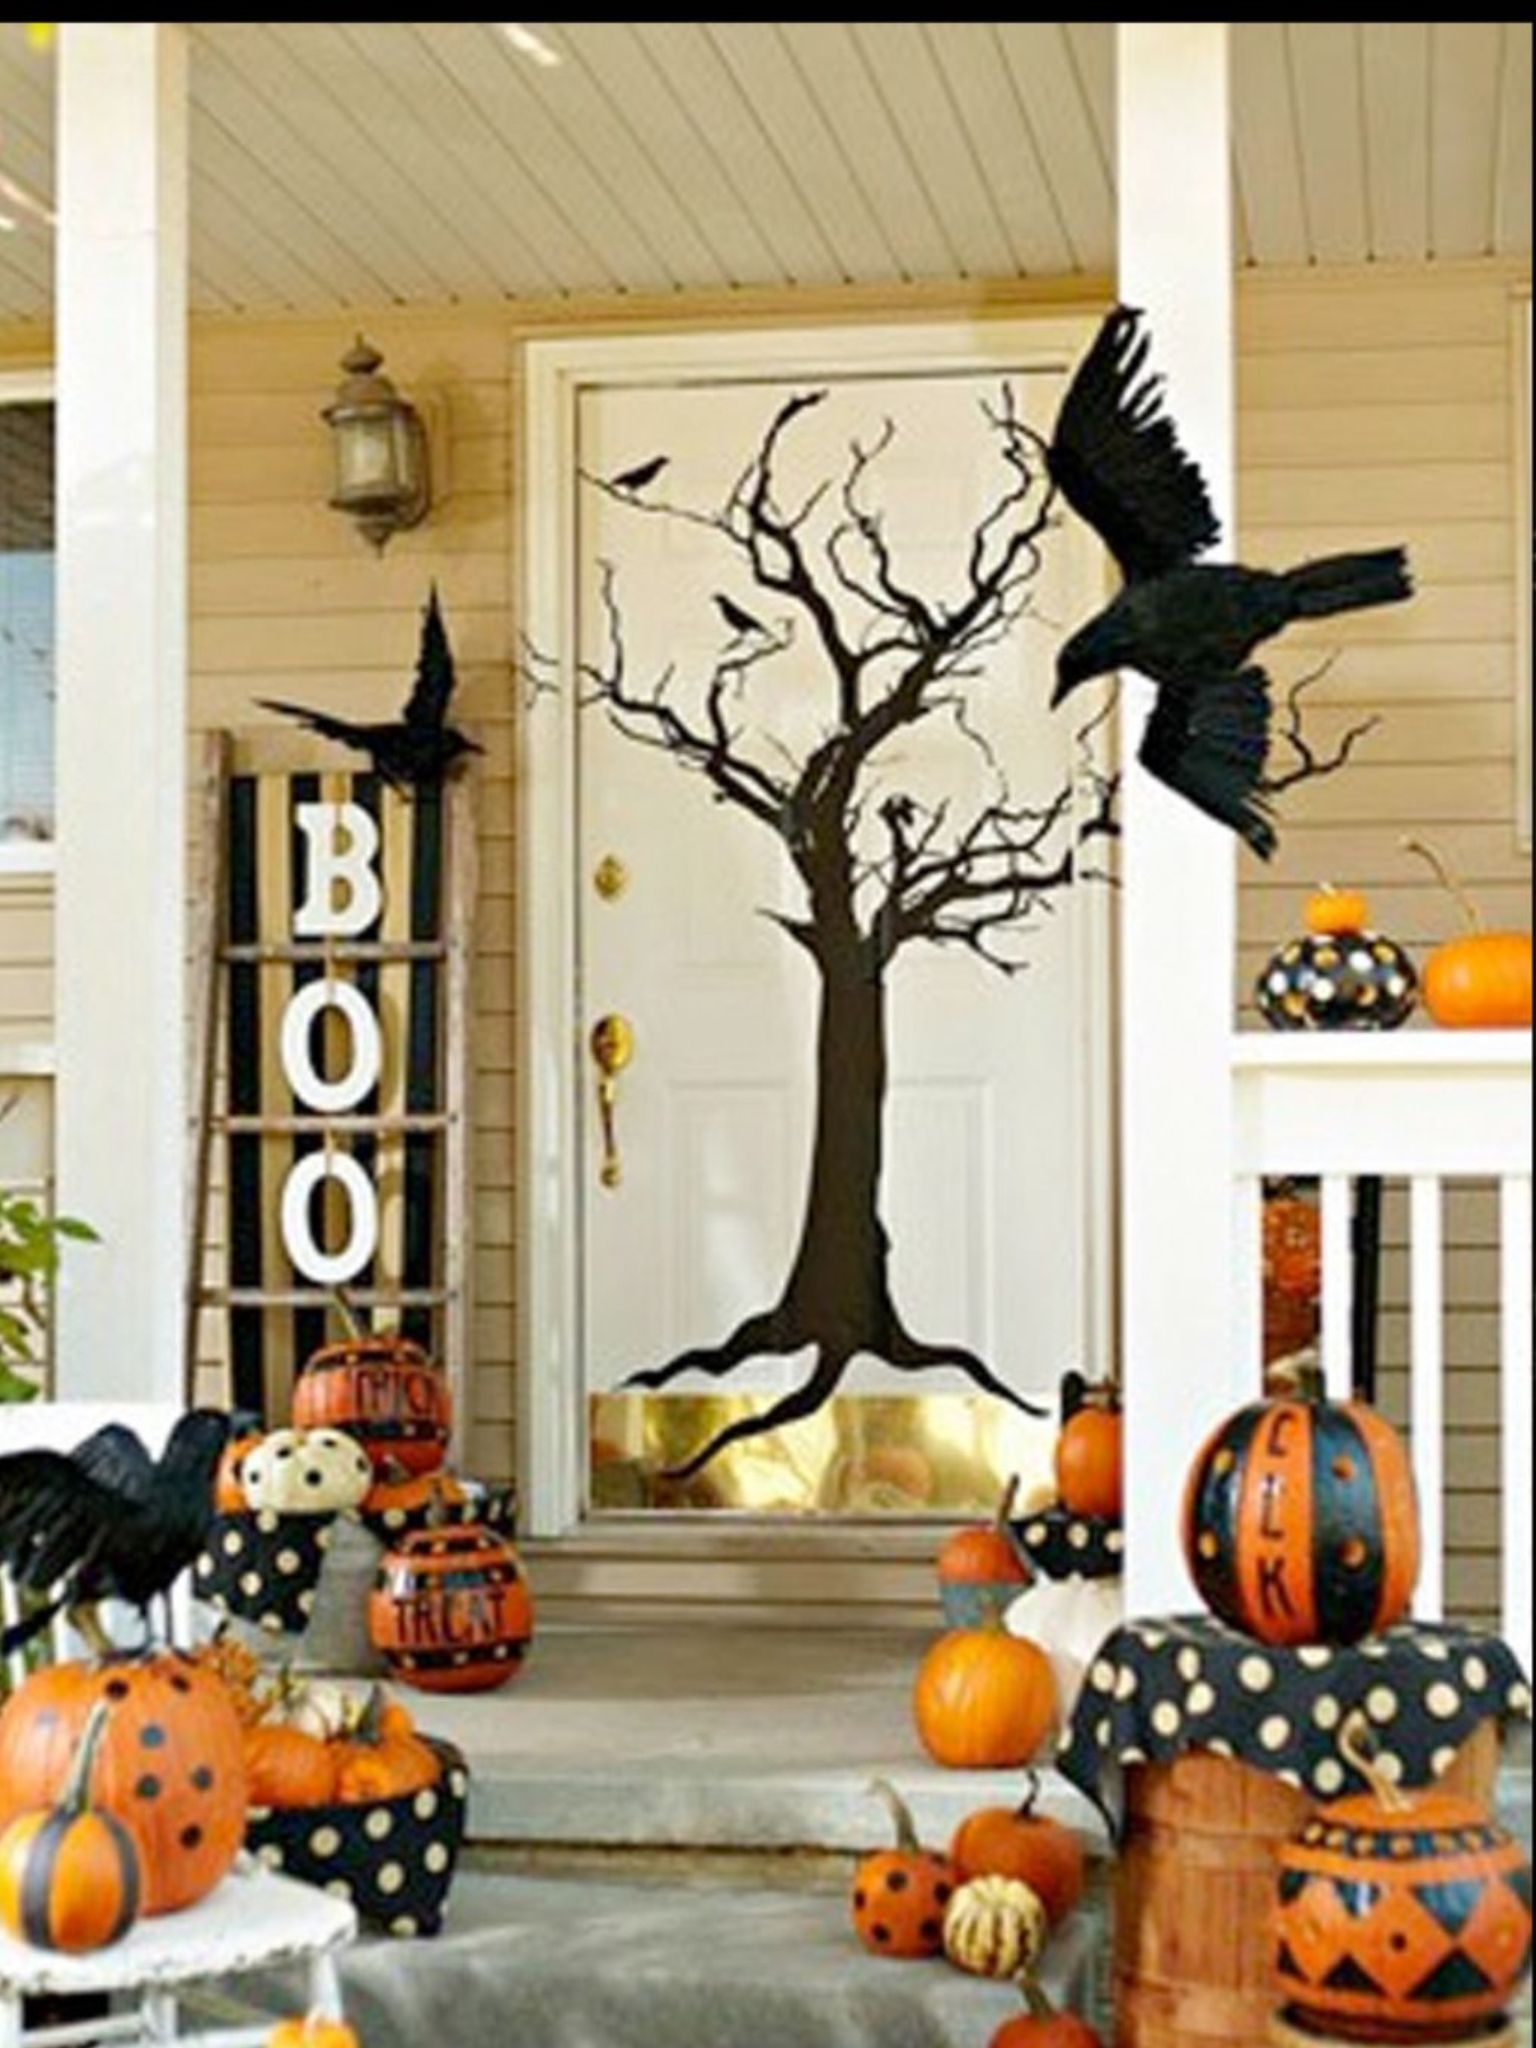 Halloween Entrance Halloween Decor Pinterest Halloween ideas - homemade halloween decorations pinterest